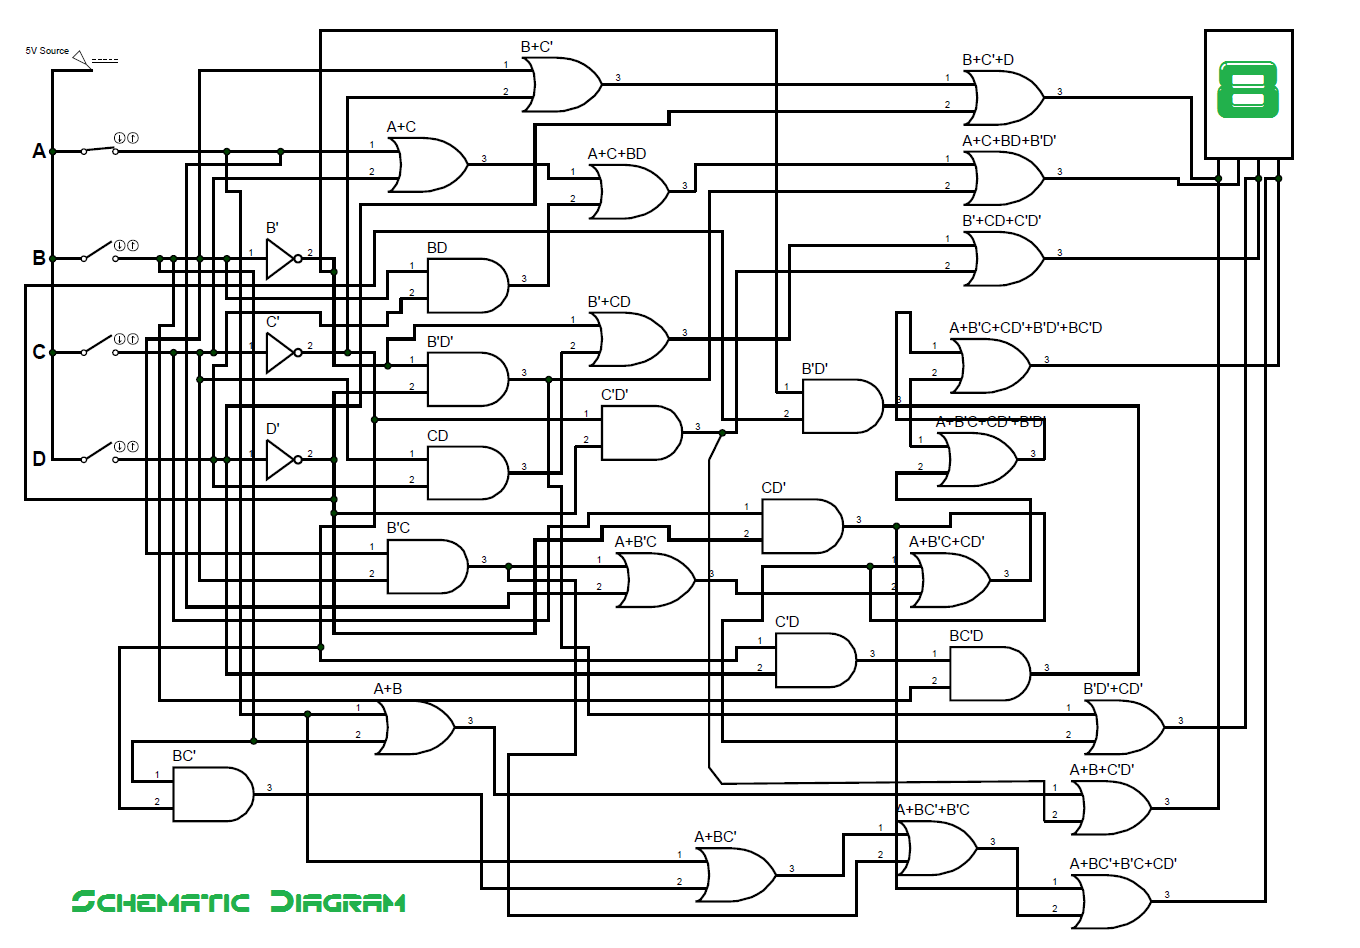 breadboard wiring diagram osram t5 ballast schematic to convert free engine